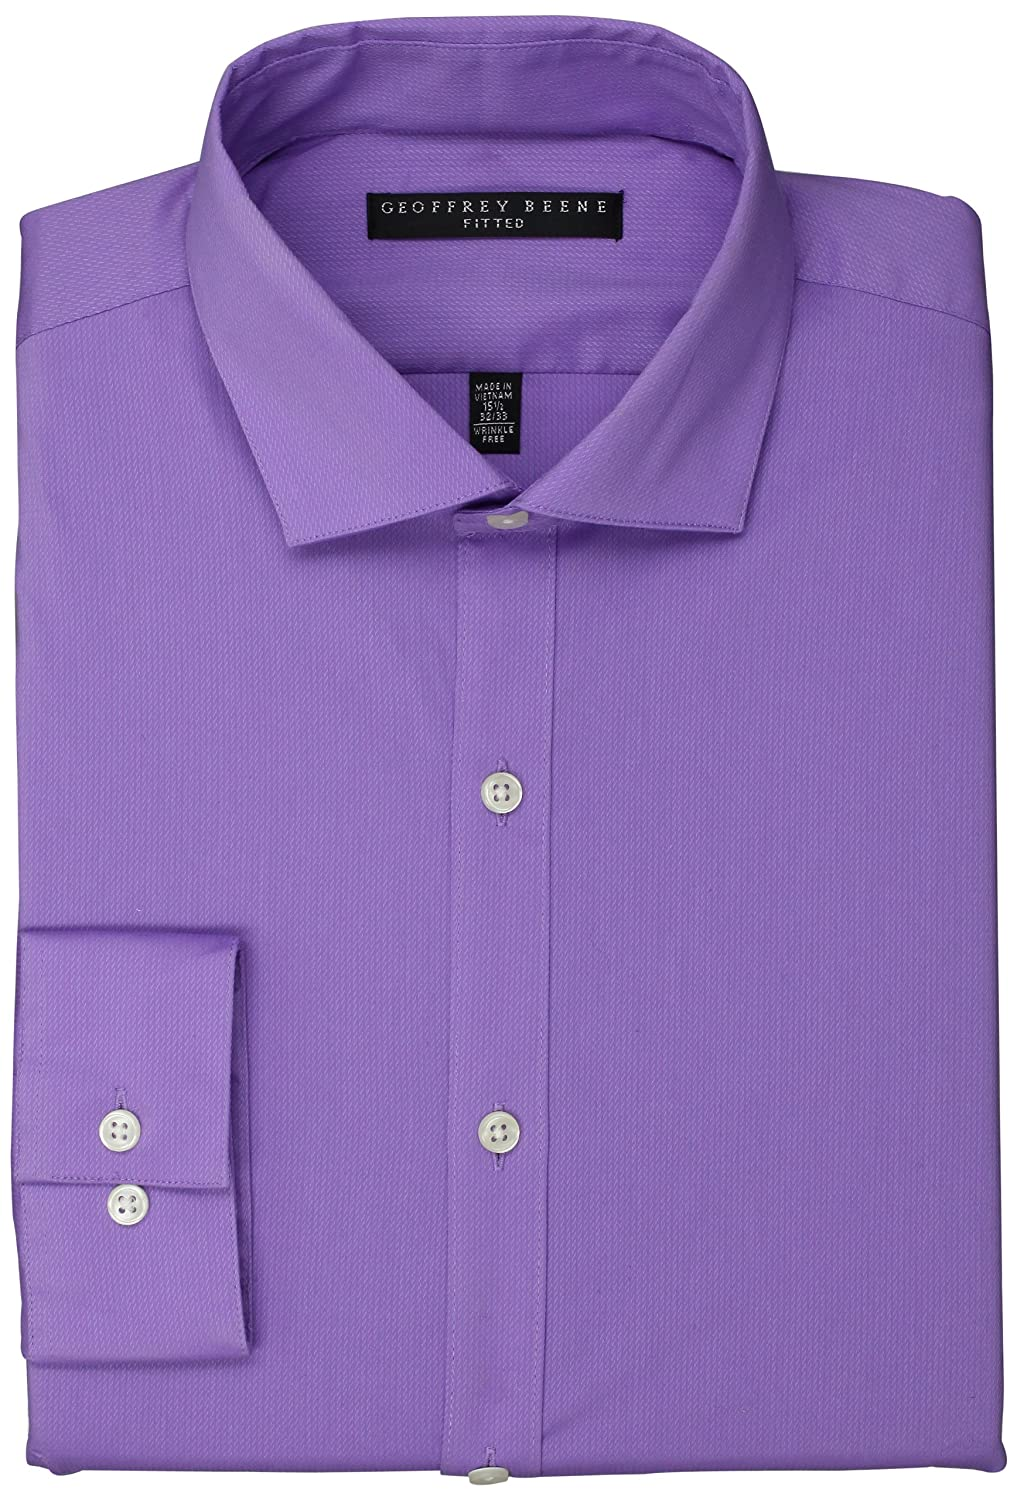 Geoffrey Beene Mens Fitted Twill Solid Ice Lilac 17 Neck 32 33